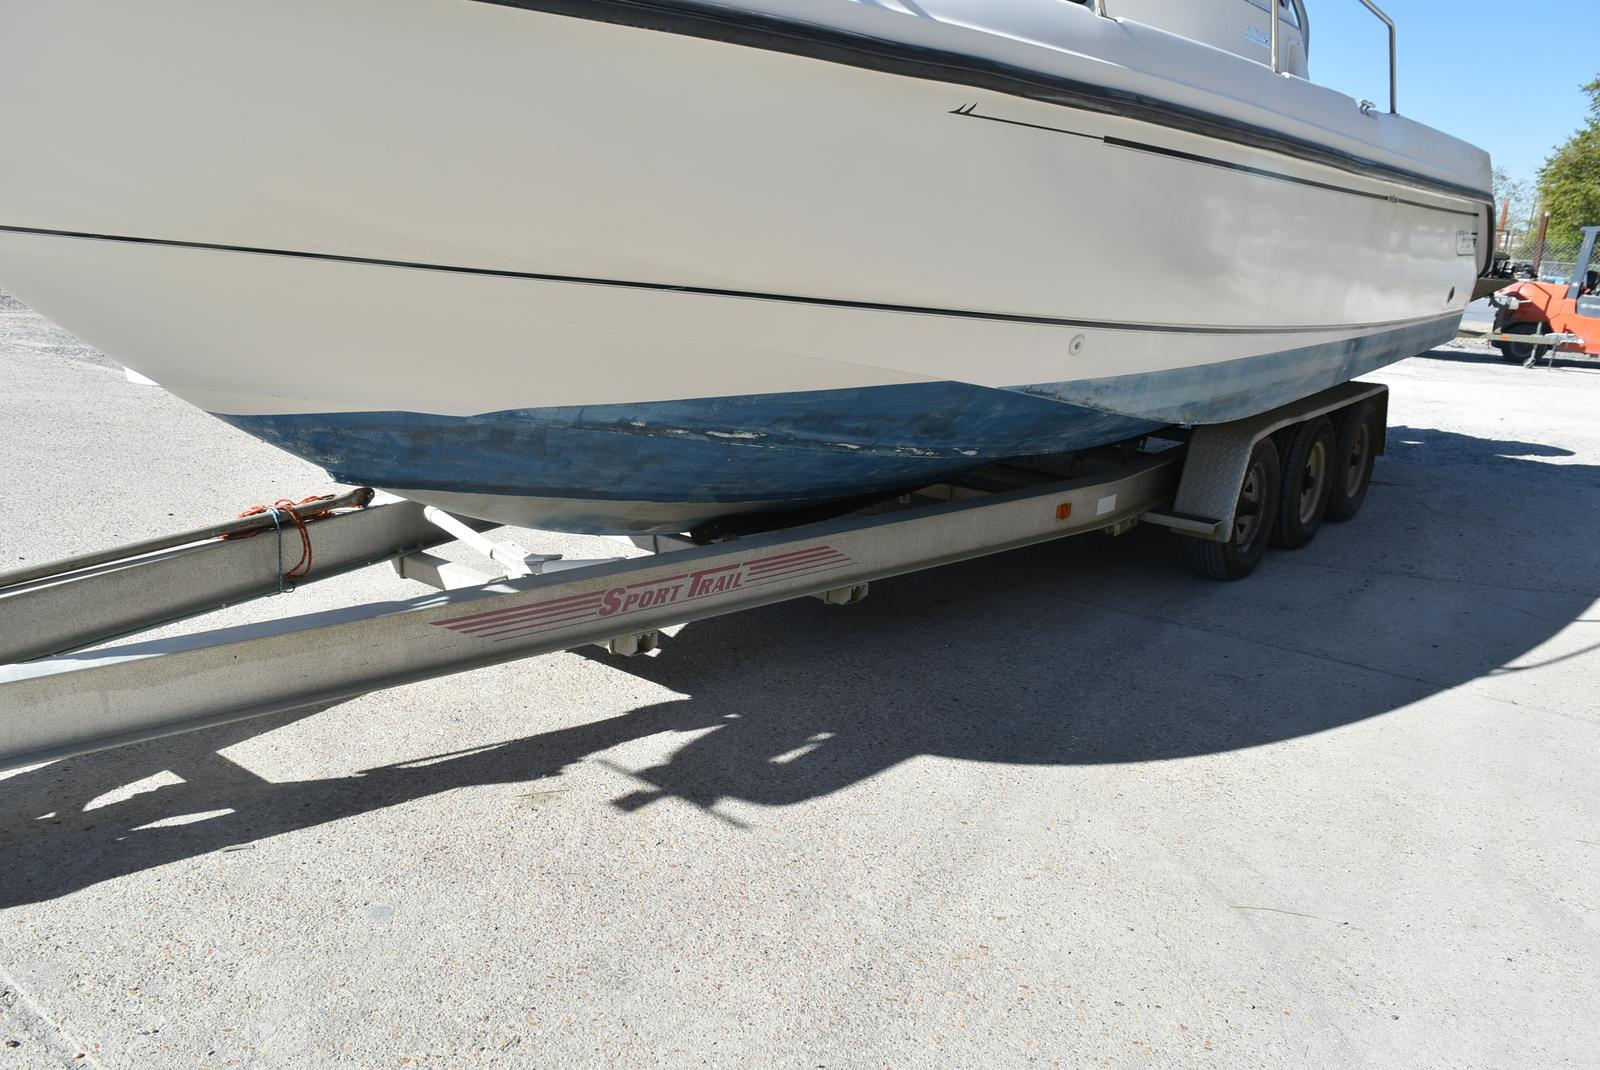 1999 Boston Whaler boat for sale, model of the boat is 285 Conquest & Image # 33 of 50